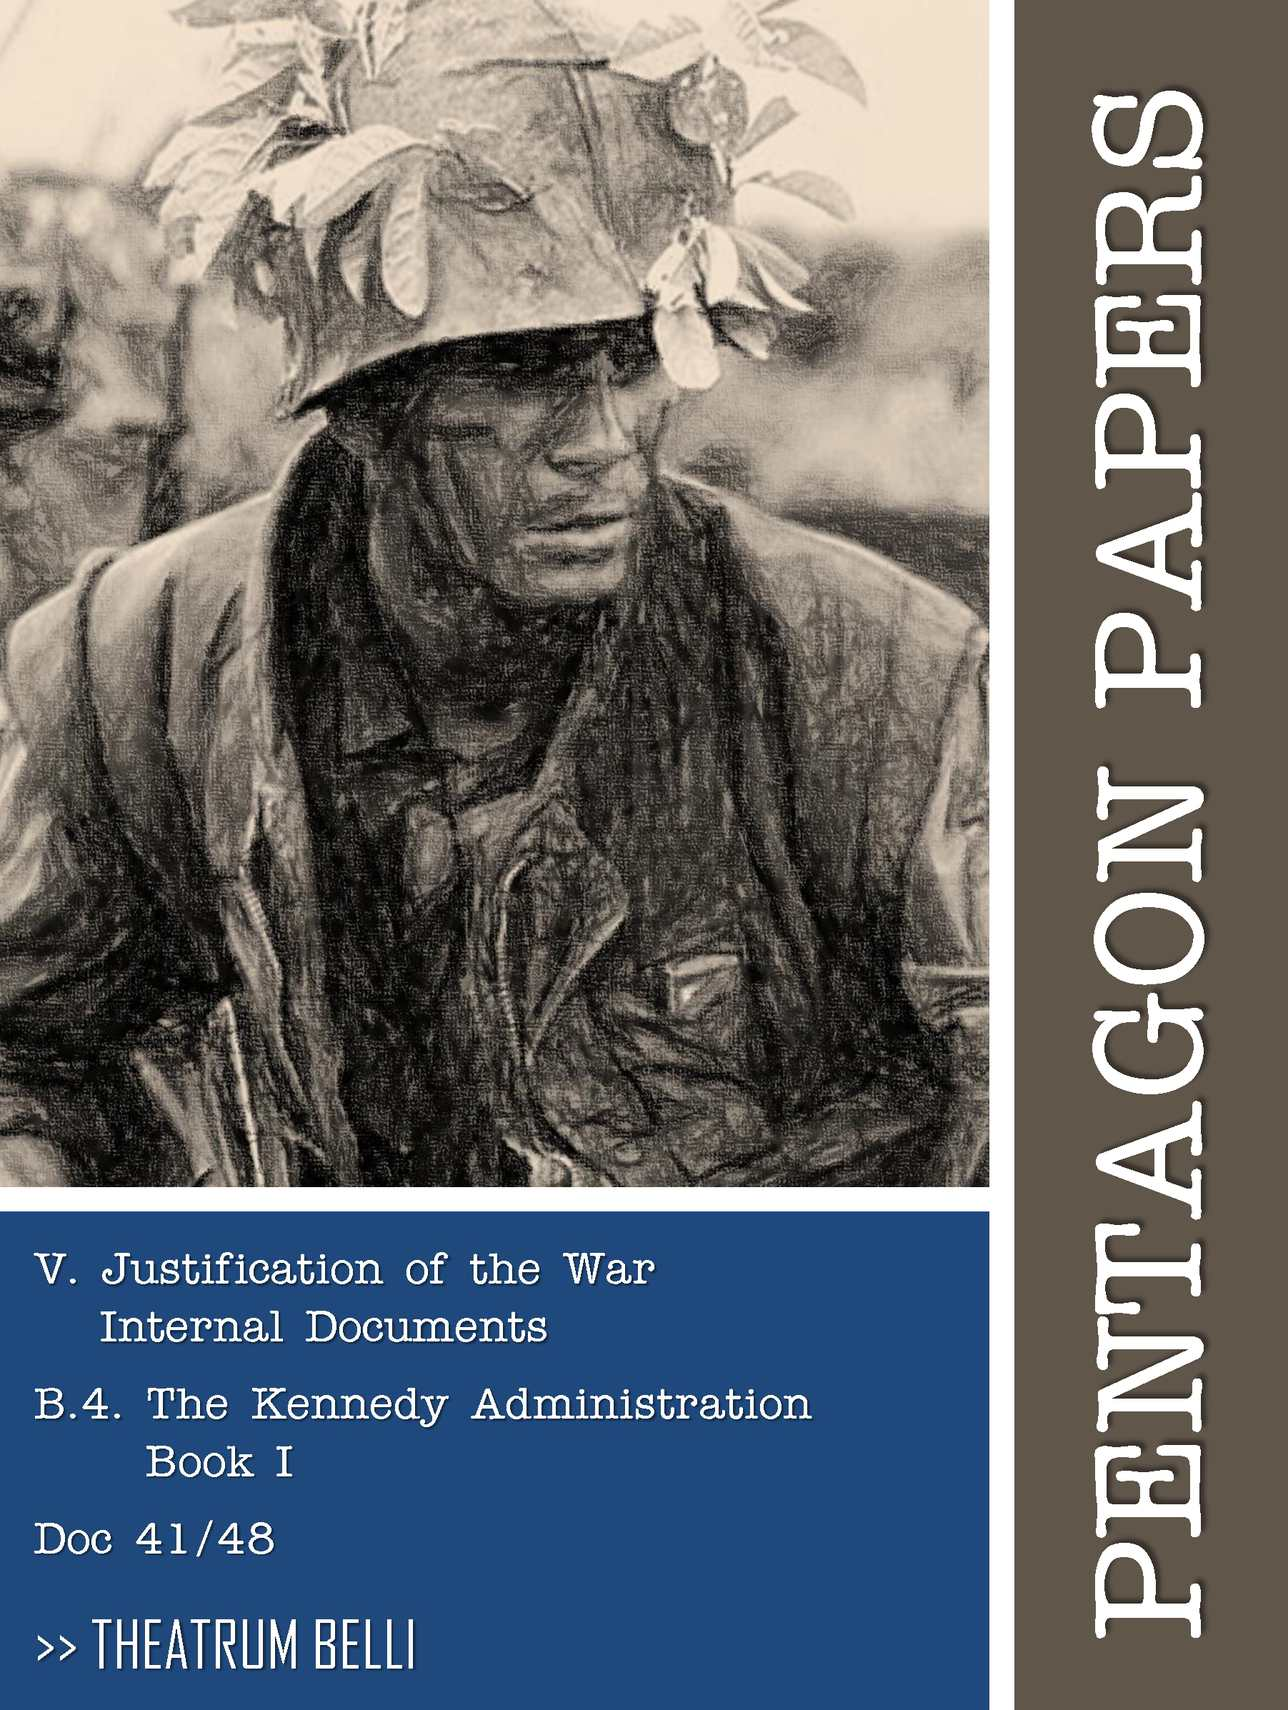 Calaméo Pentagon Papers 41 48 Justification of the War Internal Documents The Kennedy Administration Book I